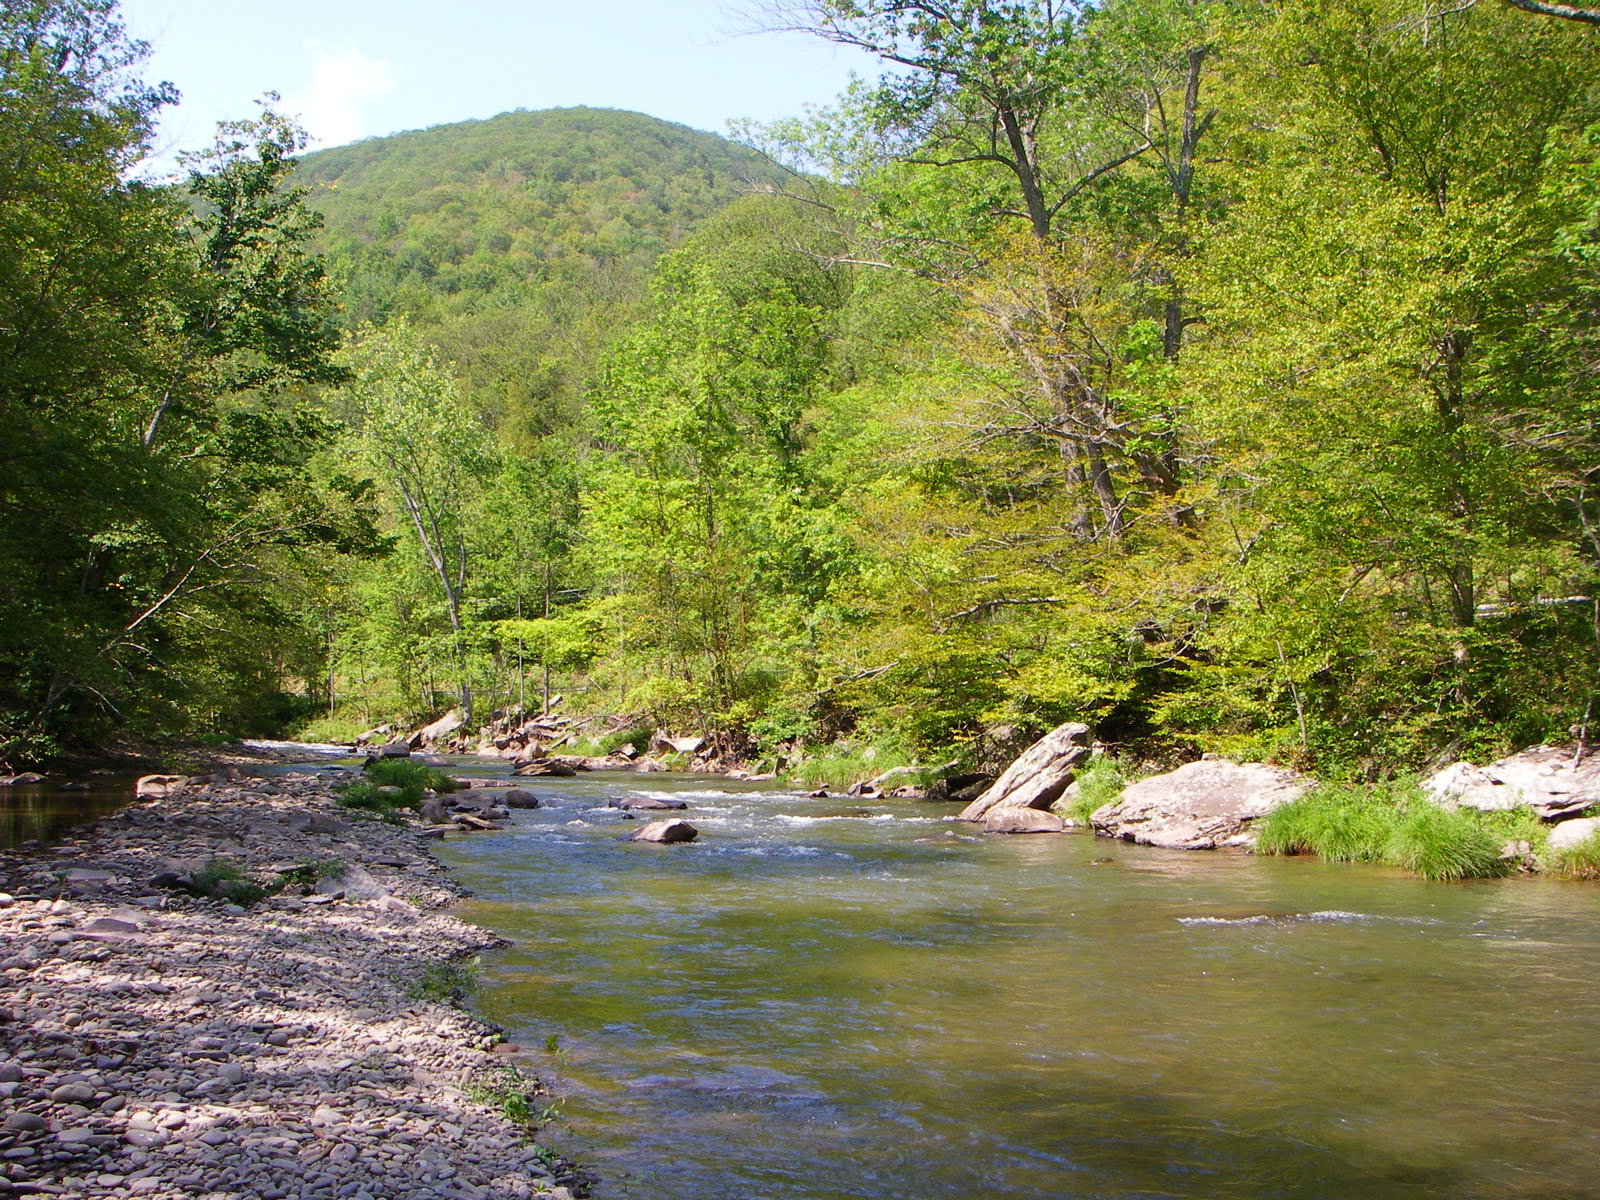 From Esopus Creek in New York.